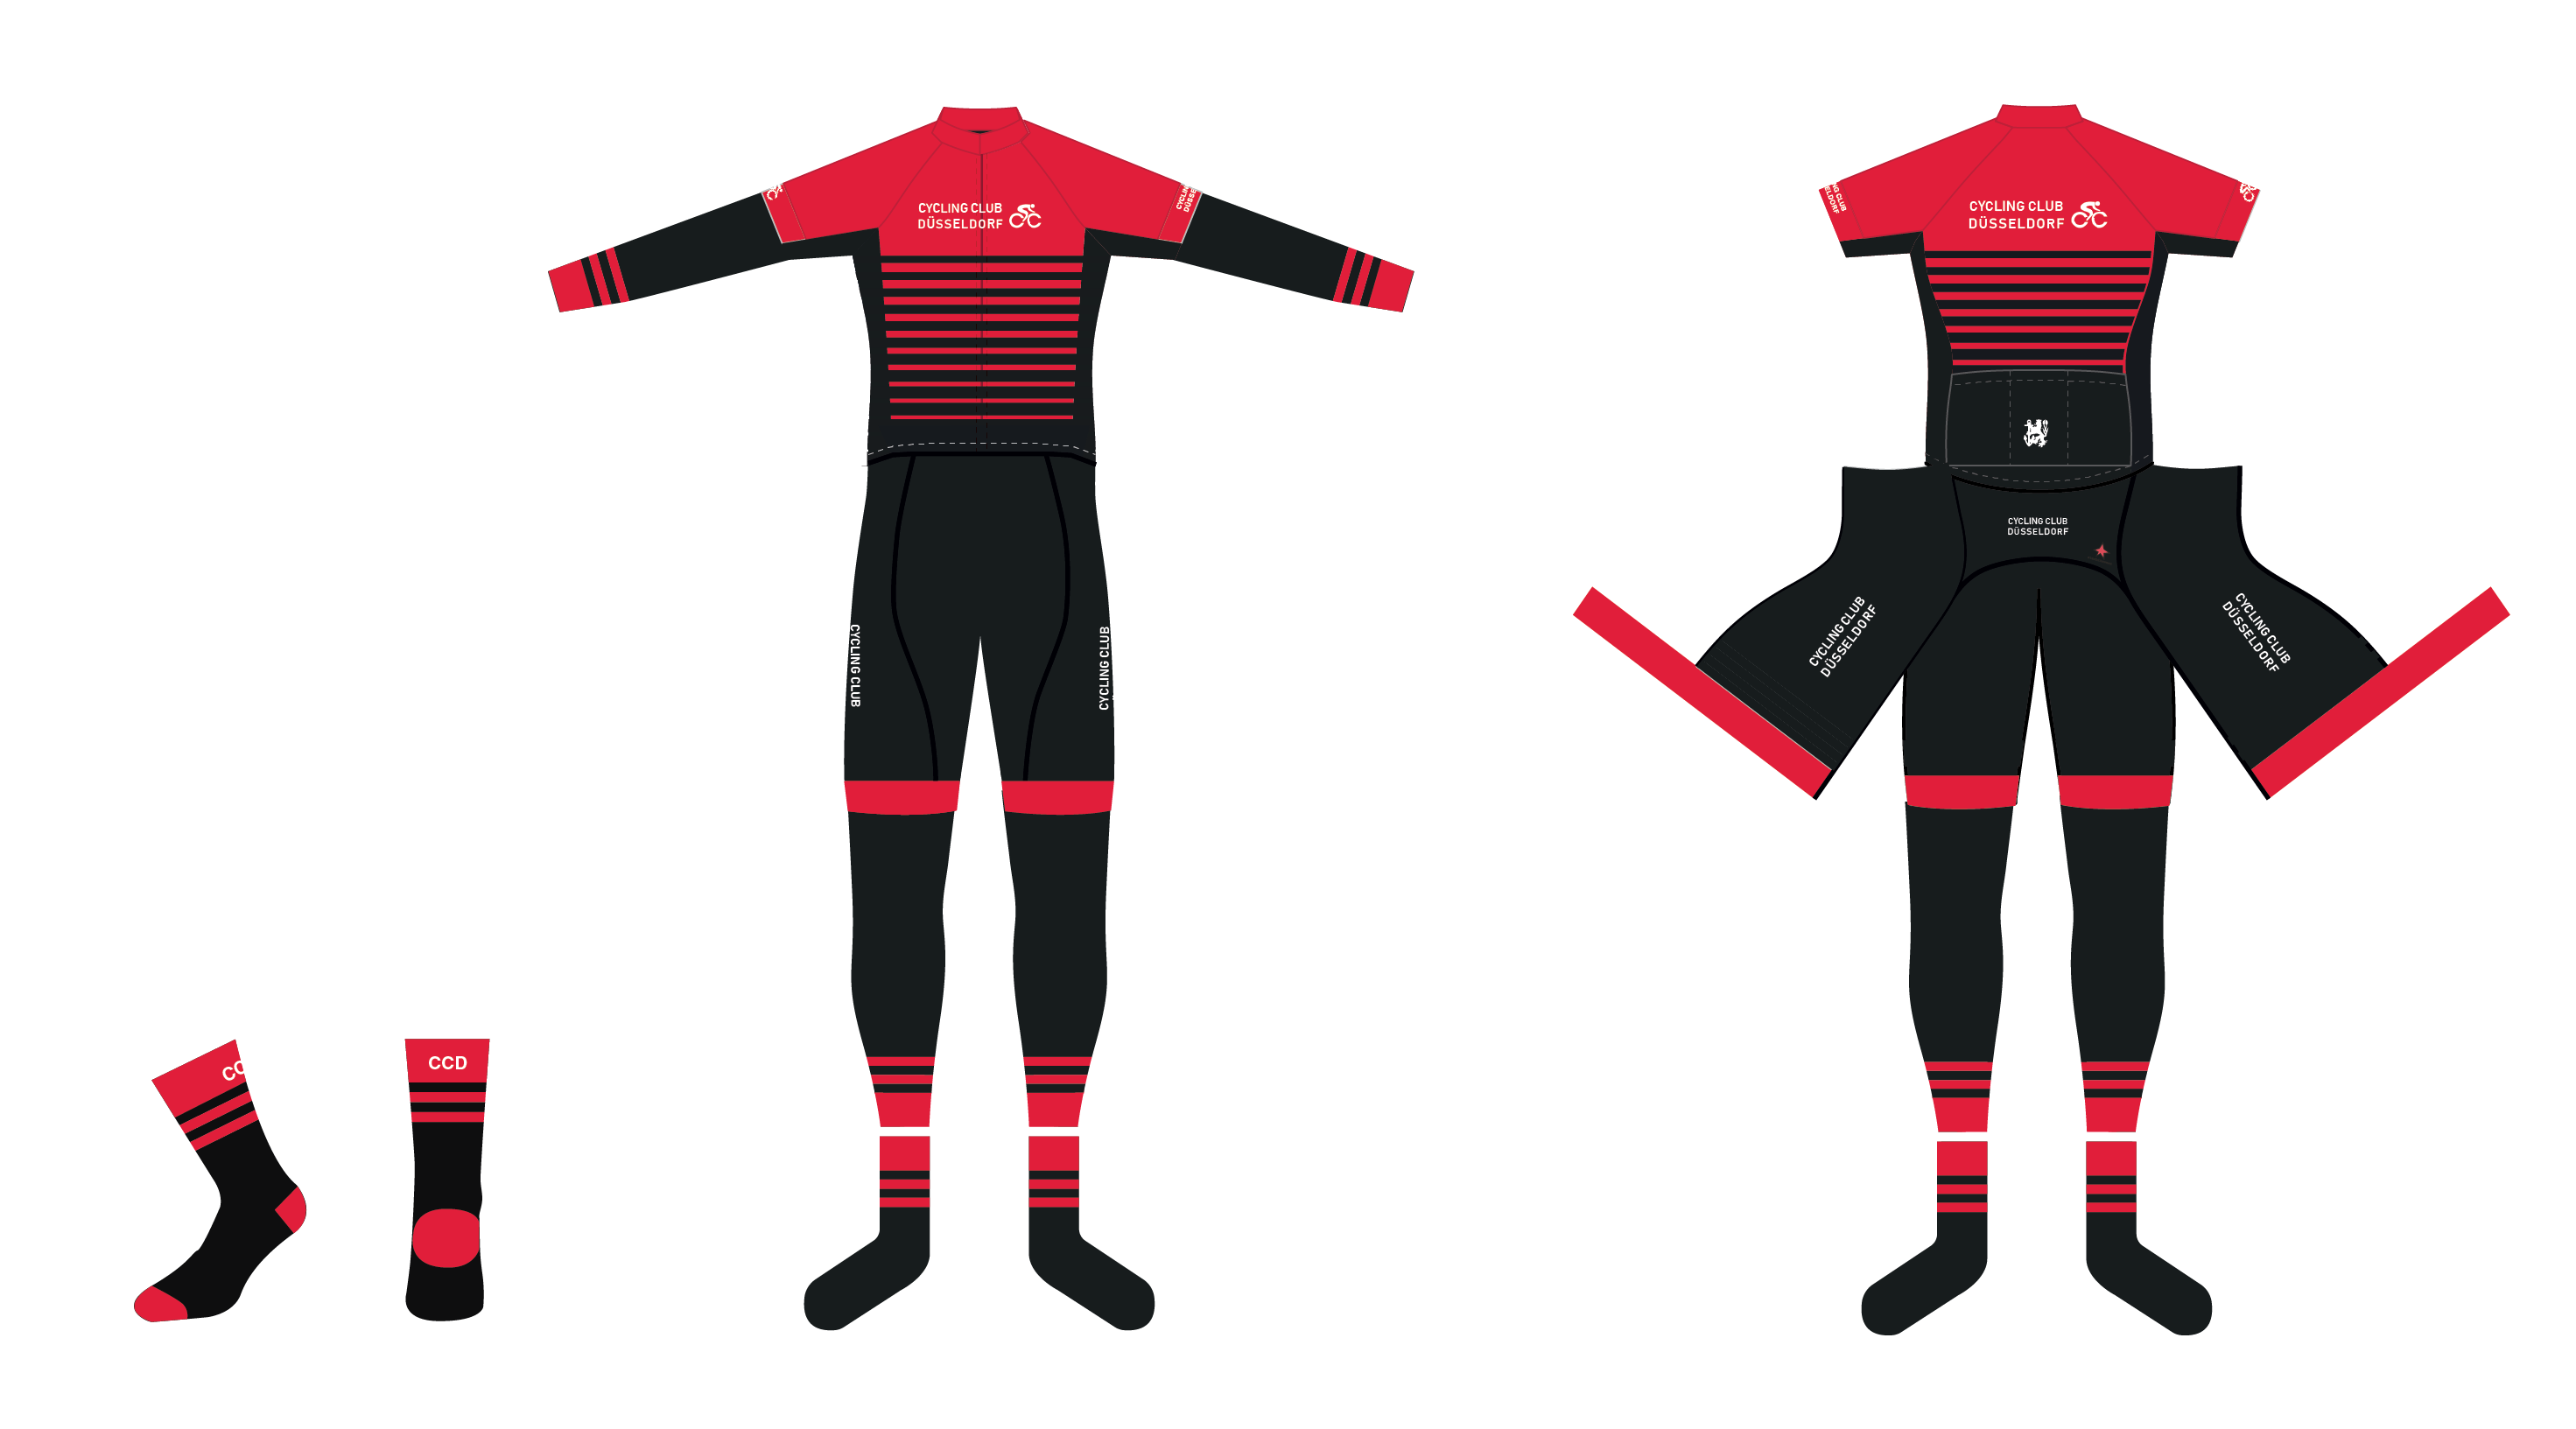 Cycling Club Düsseldorf Teamware Design 2018